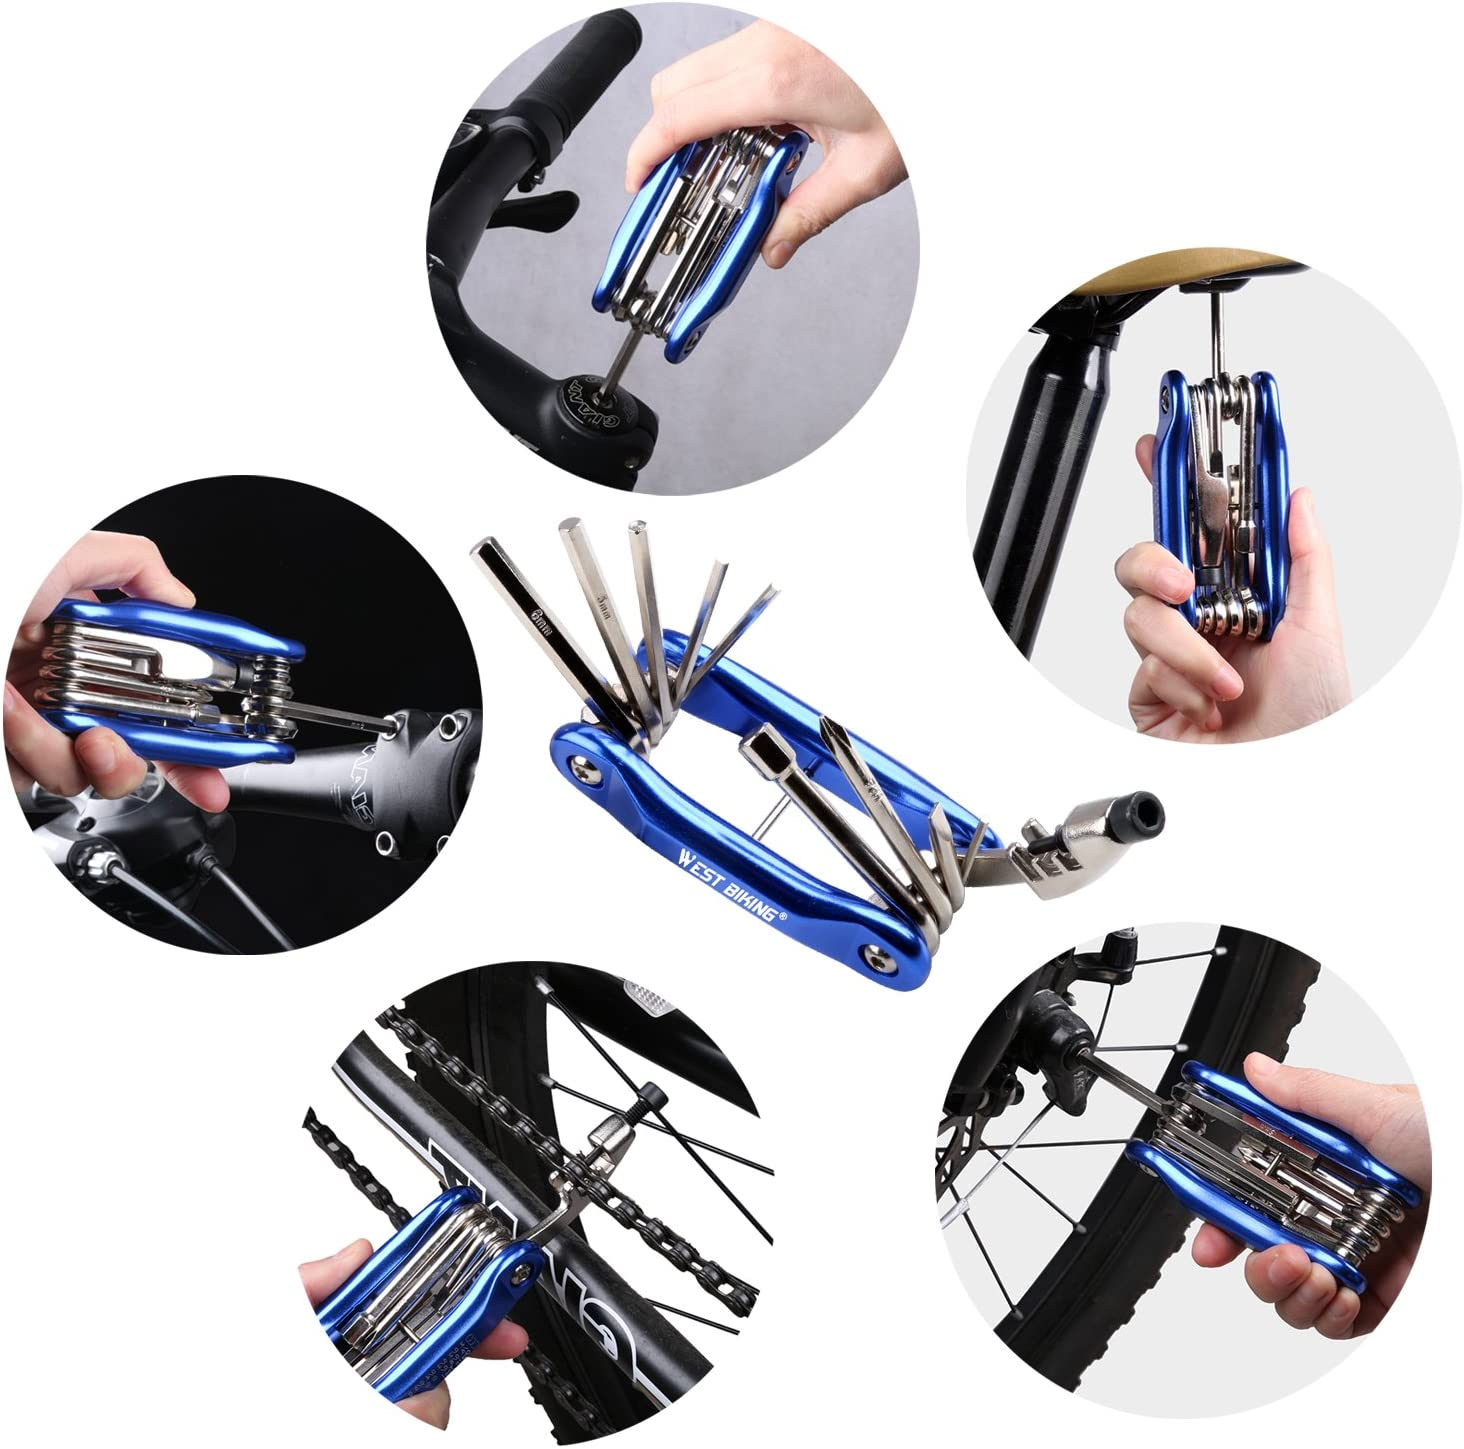 West Biking Bike Multi Fixing Tools Carbon Steel Portable Compact Multifunctional Mountain Bike Cycling Allen Key Wrench Set for MTB Road Bike Cycling Accessories